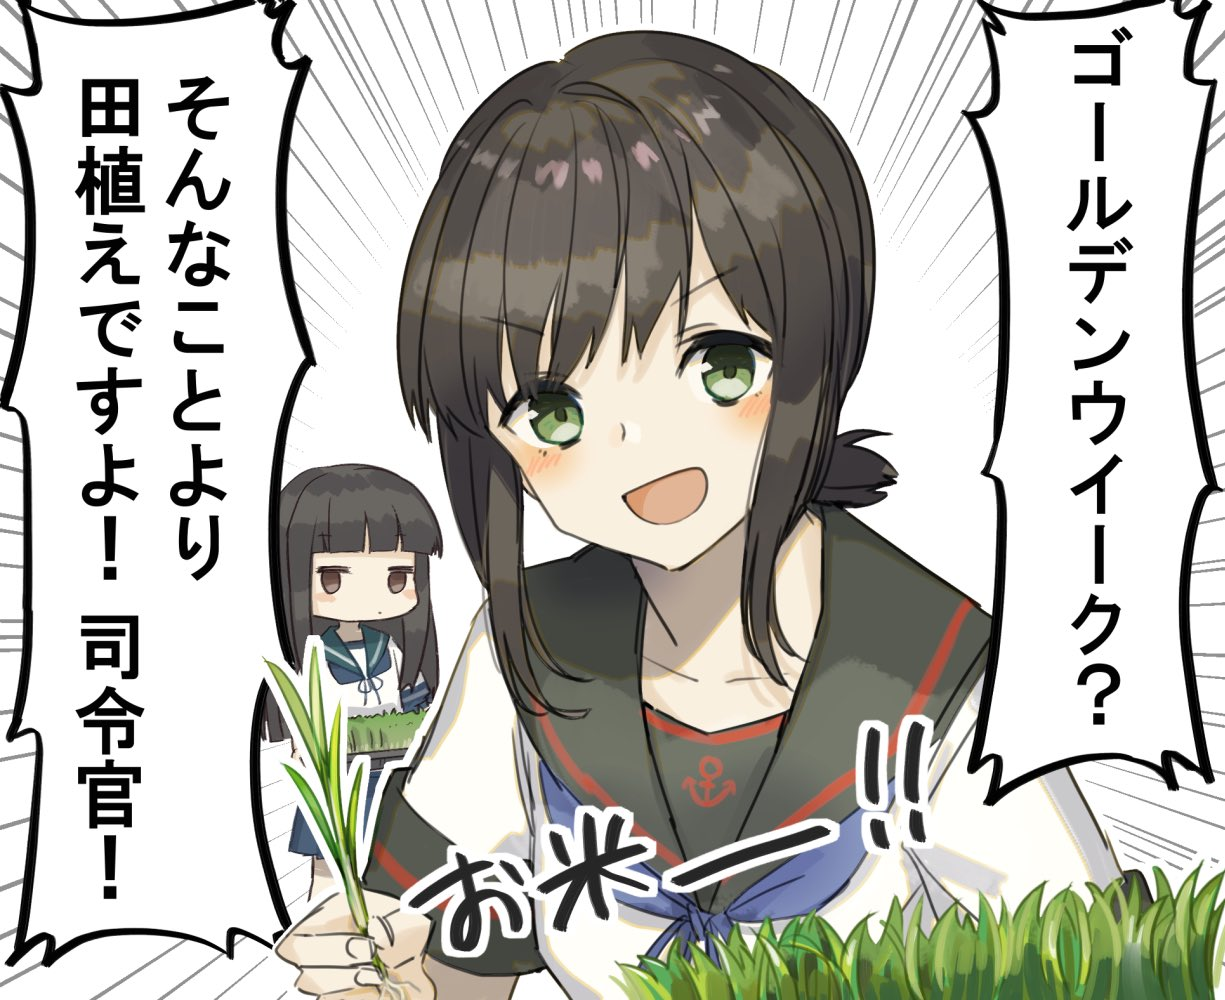 2girls anchor_symbol bangs black_hair black_sailor_collar blue_neckwear blue_skirt blunt_bangs brown_eyes collared_shirt commentary_request emphasis_lines fubuki_(kantai_collection) grass green_eyes hatsuyuki_(kantai_collection) kantai_collection long_hair low_ponytail multiple_girls neckerchief open_mouth pleated_skirt ponytail remodel_(kantai_collection) sailor_collar school_uniform serafuku shirt short_ponytail sidelocks skirt smile translation_request upper_body yamashiki_(orca_buteo)